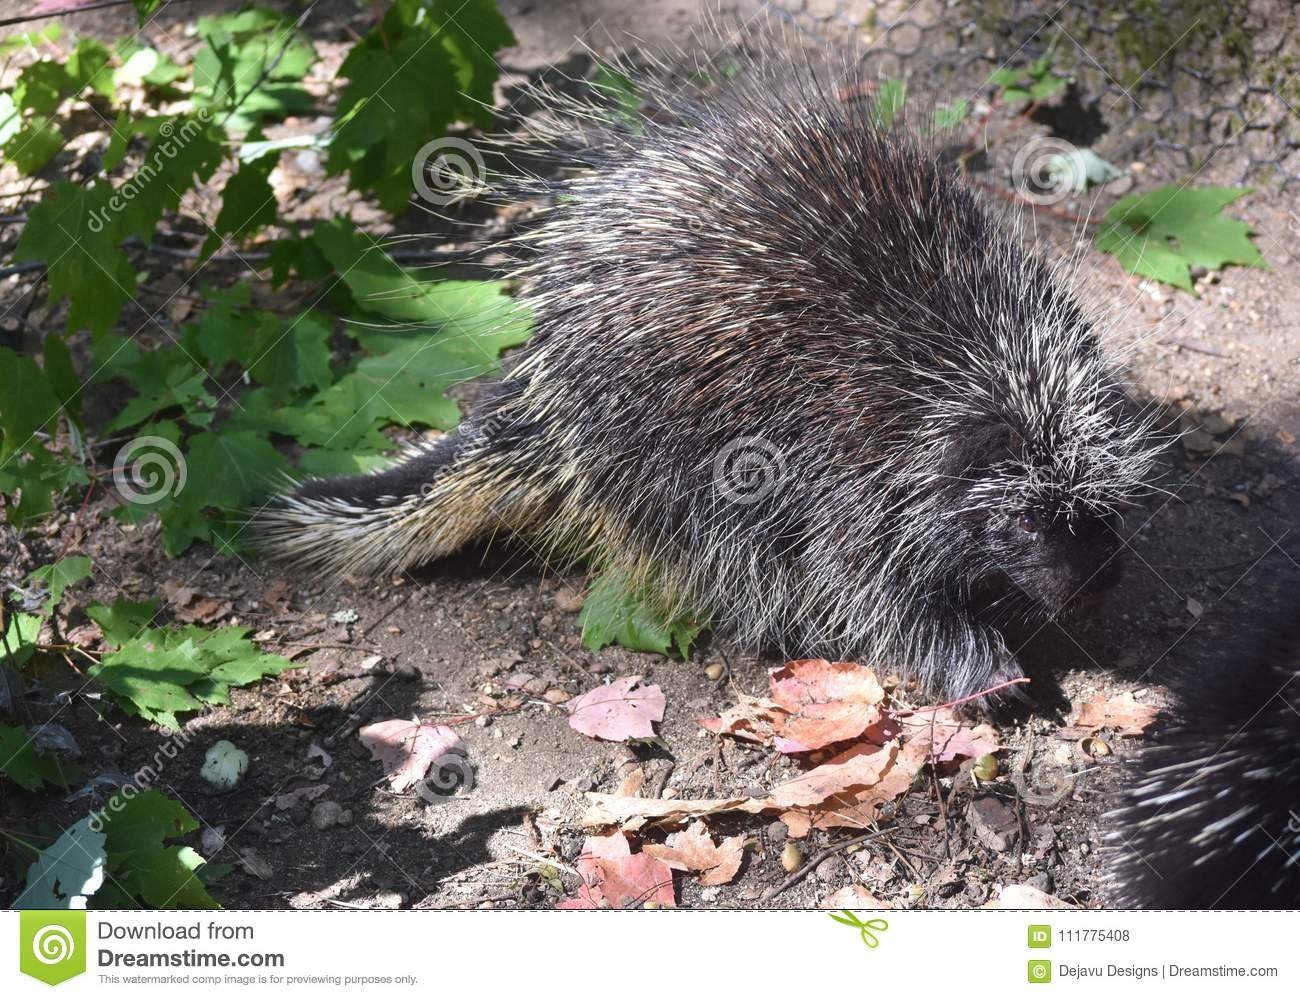 Beautiful porcupine with black quills and white tips